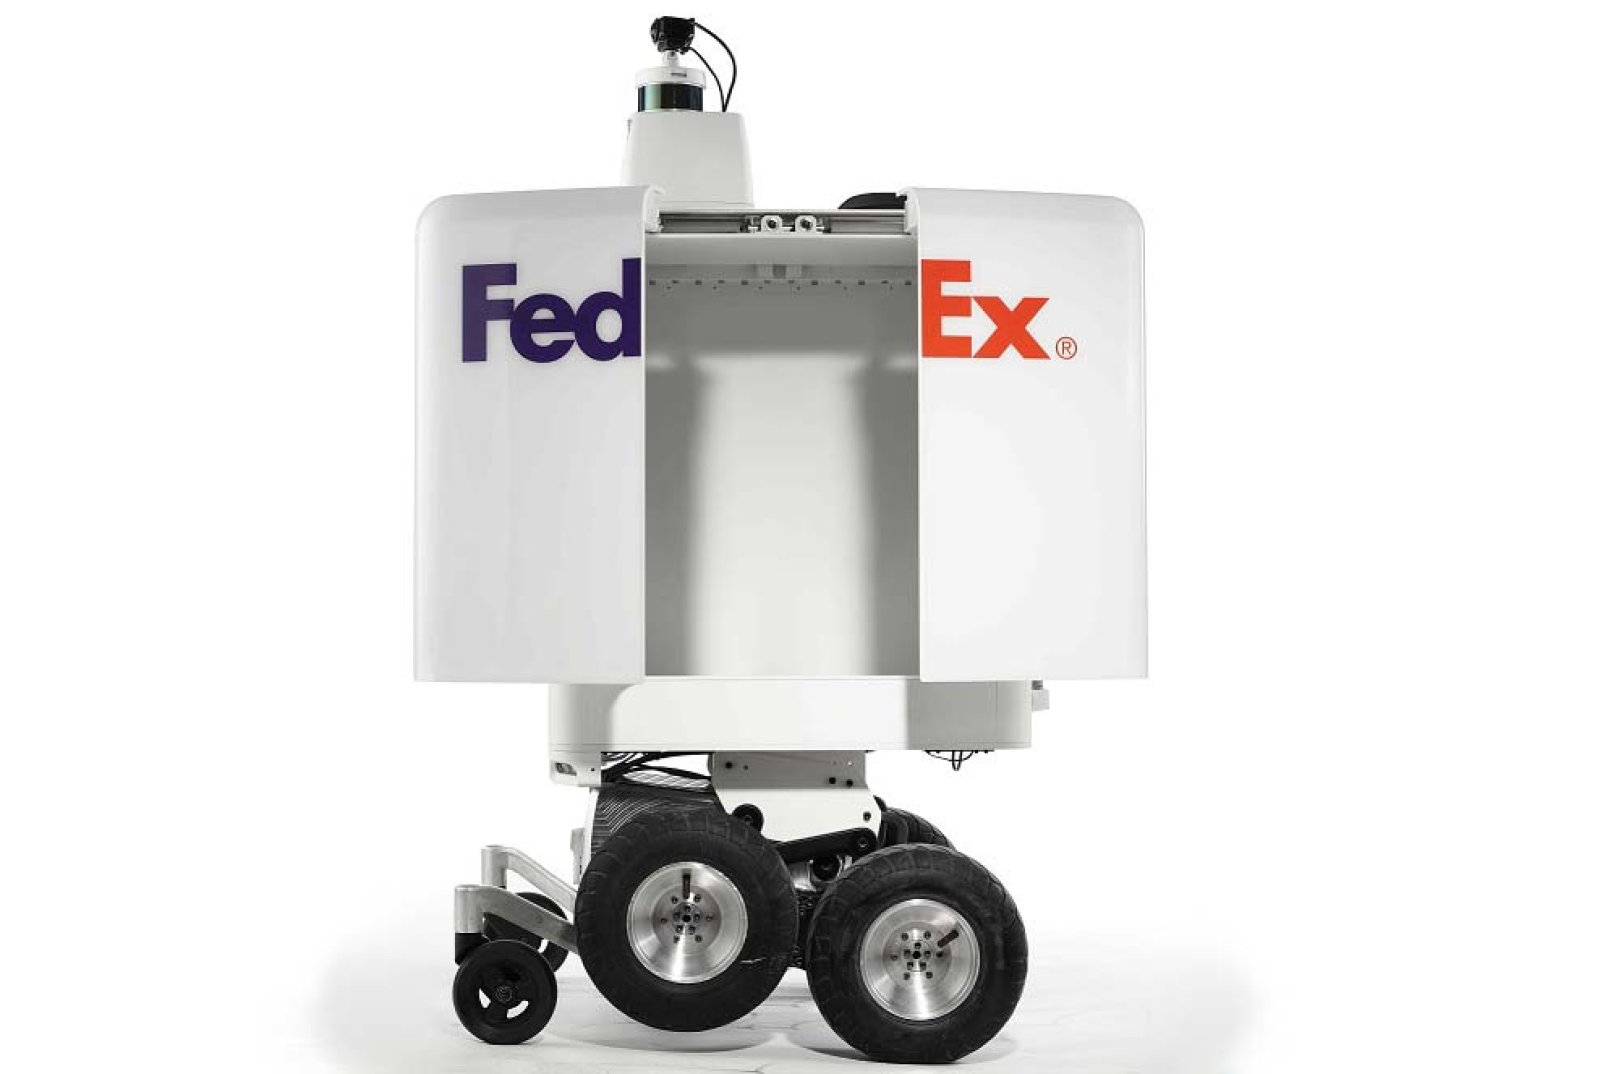 FedEx will trial autonomous delivery robots this summer | DeviceDaily.com